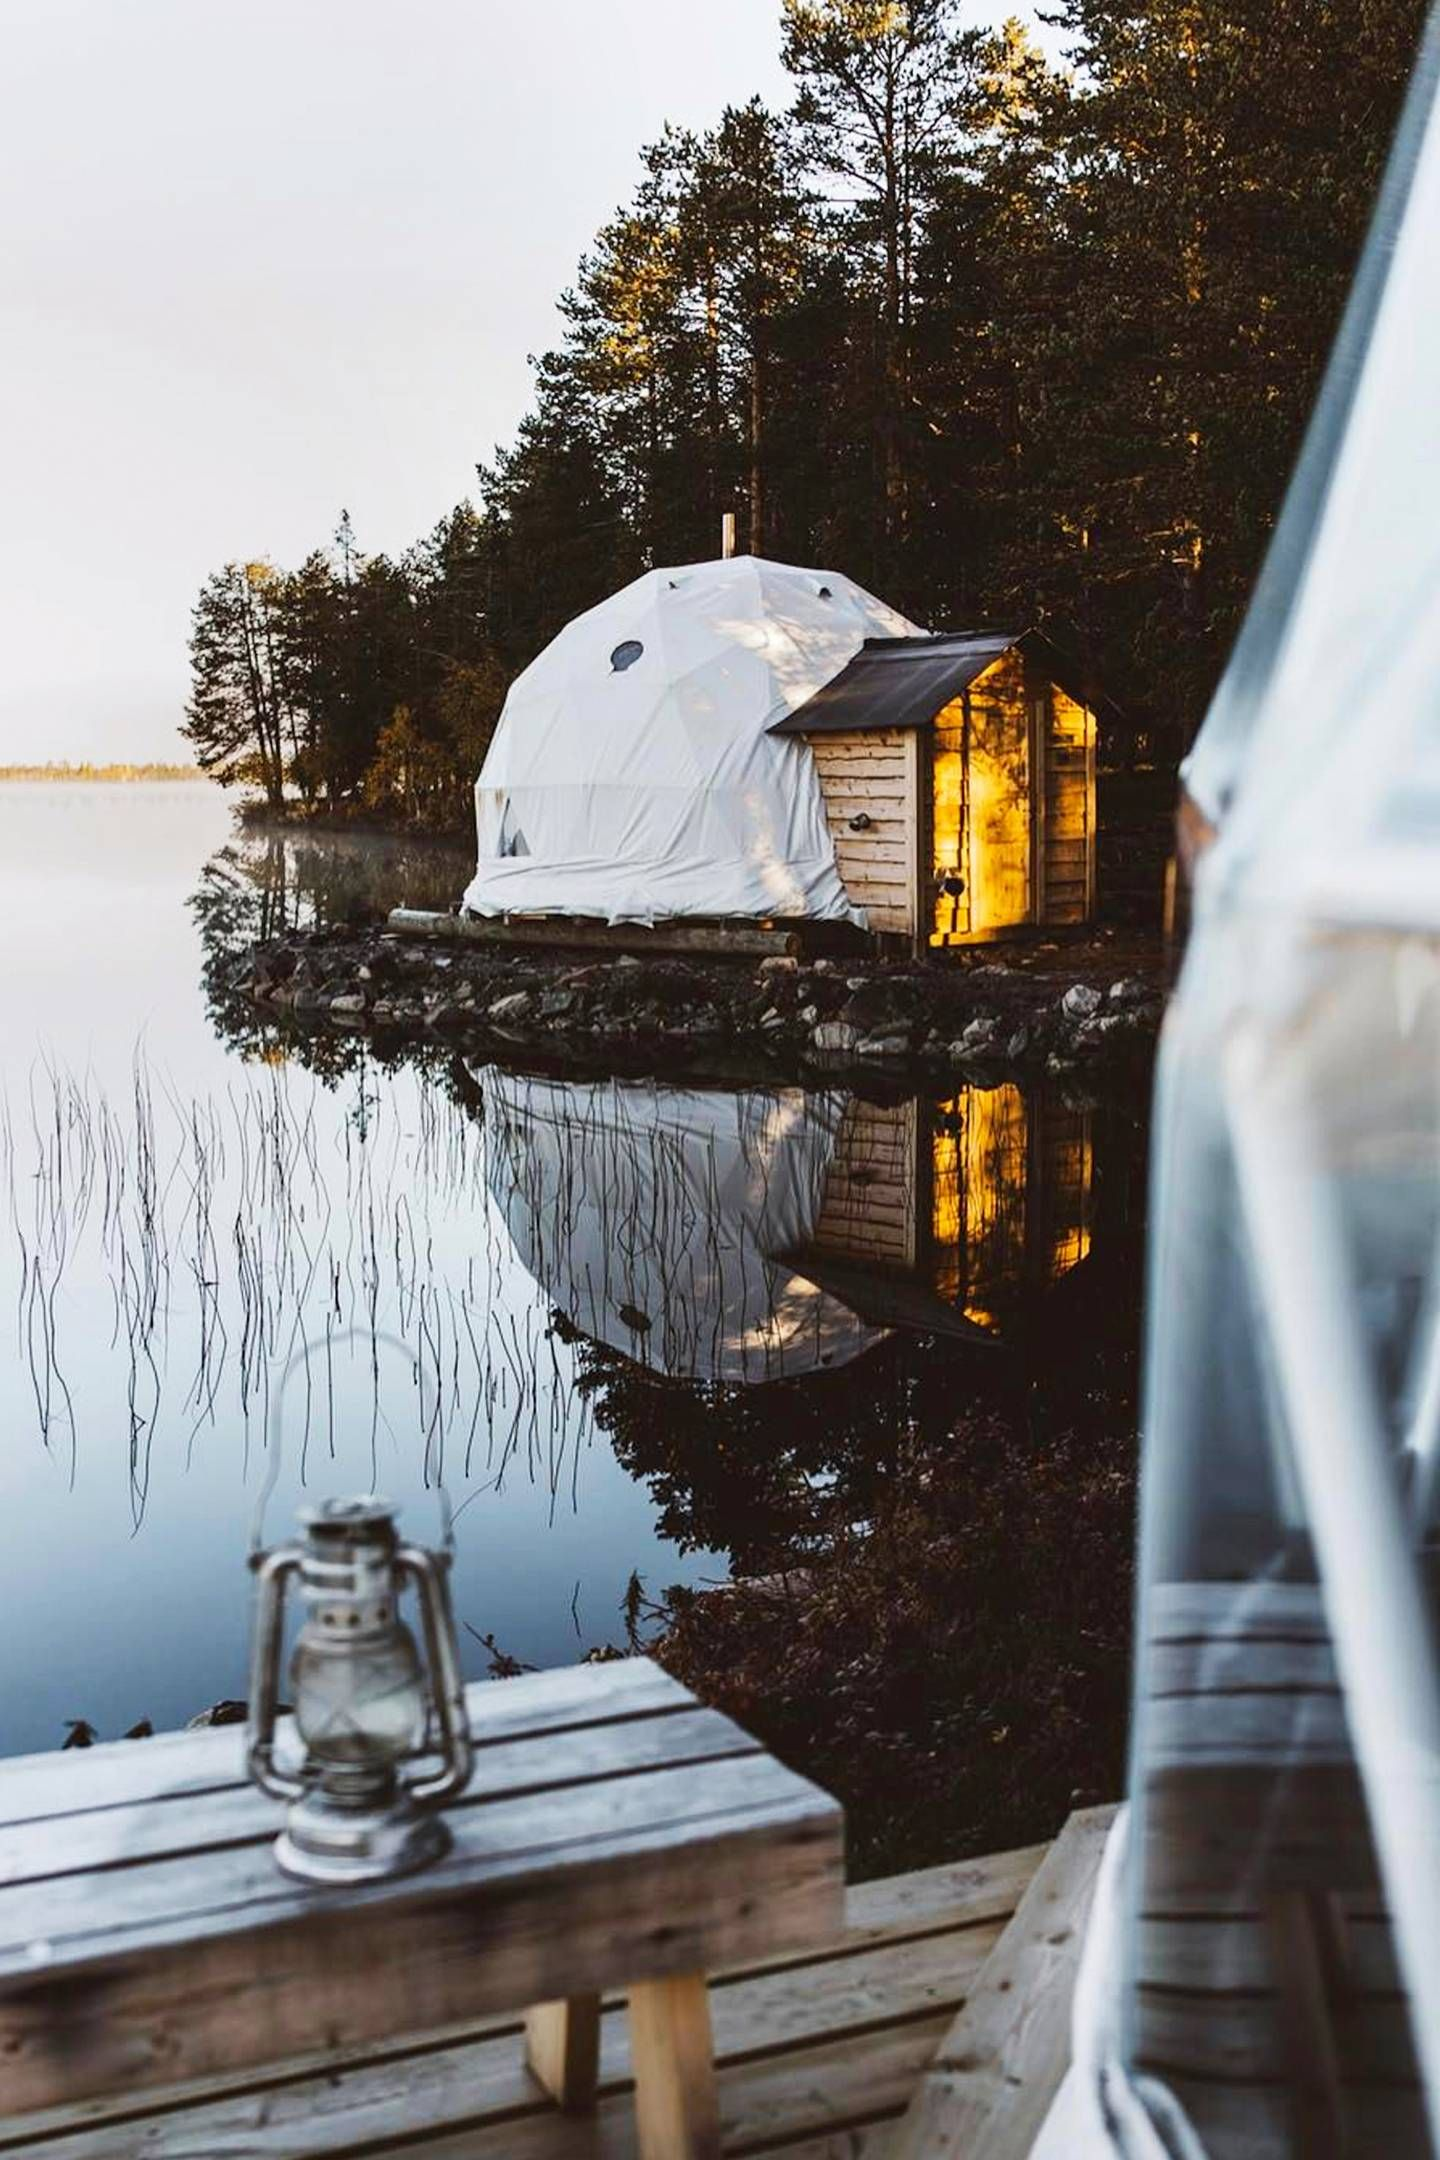 The coolest bubble hotels around the world